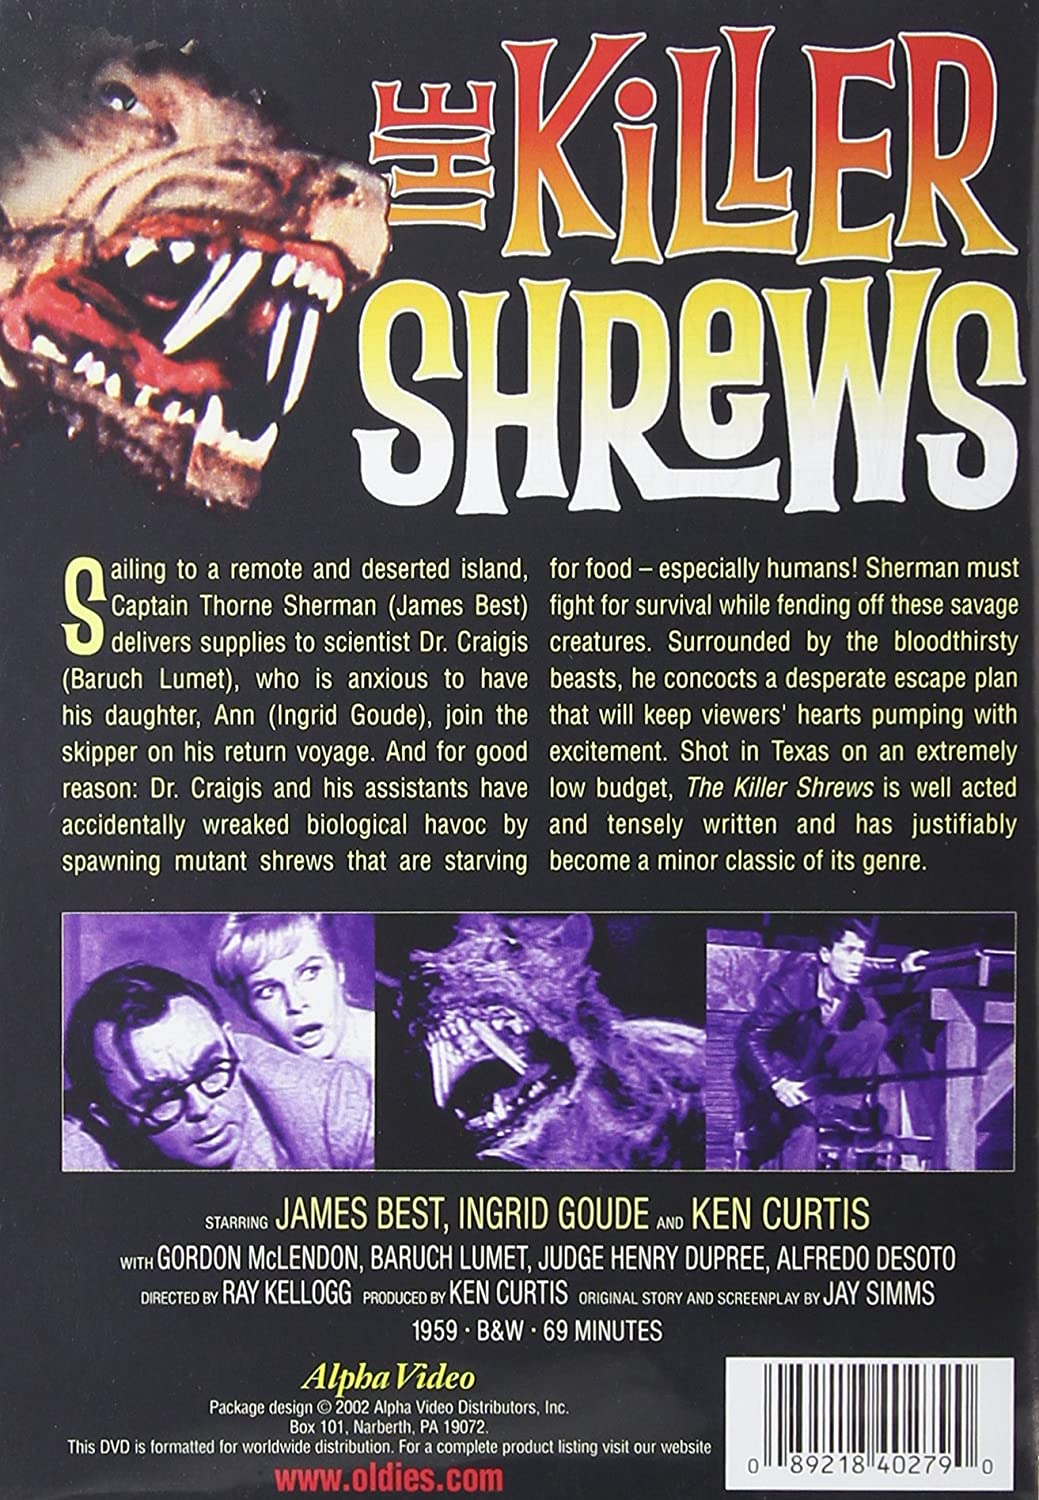 The Killer Shrews (1959) starring James Best, Ken Curtis